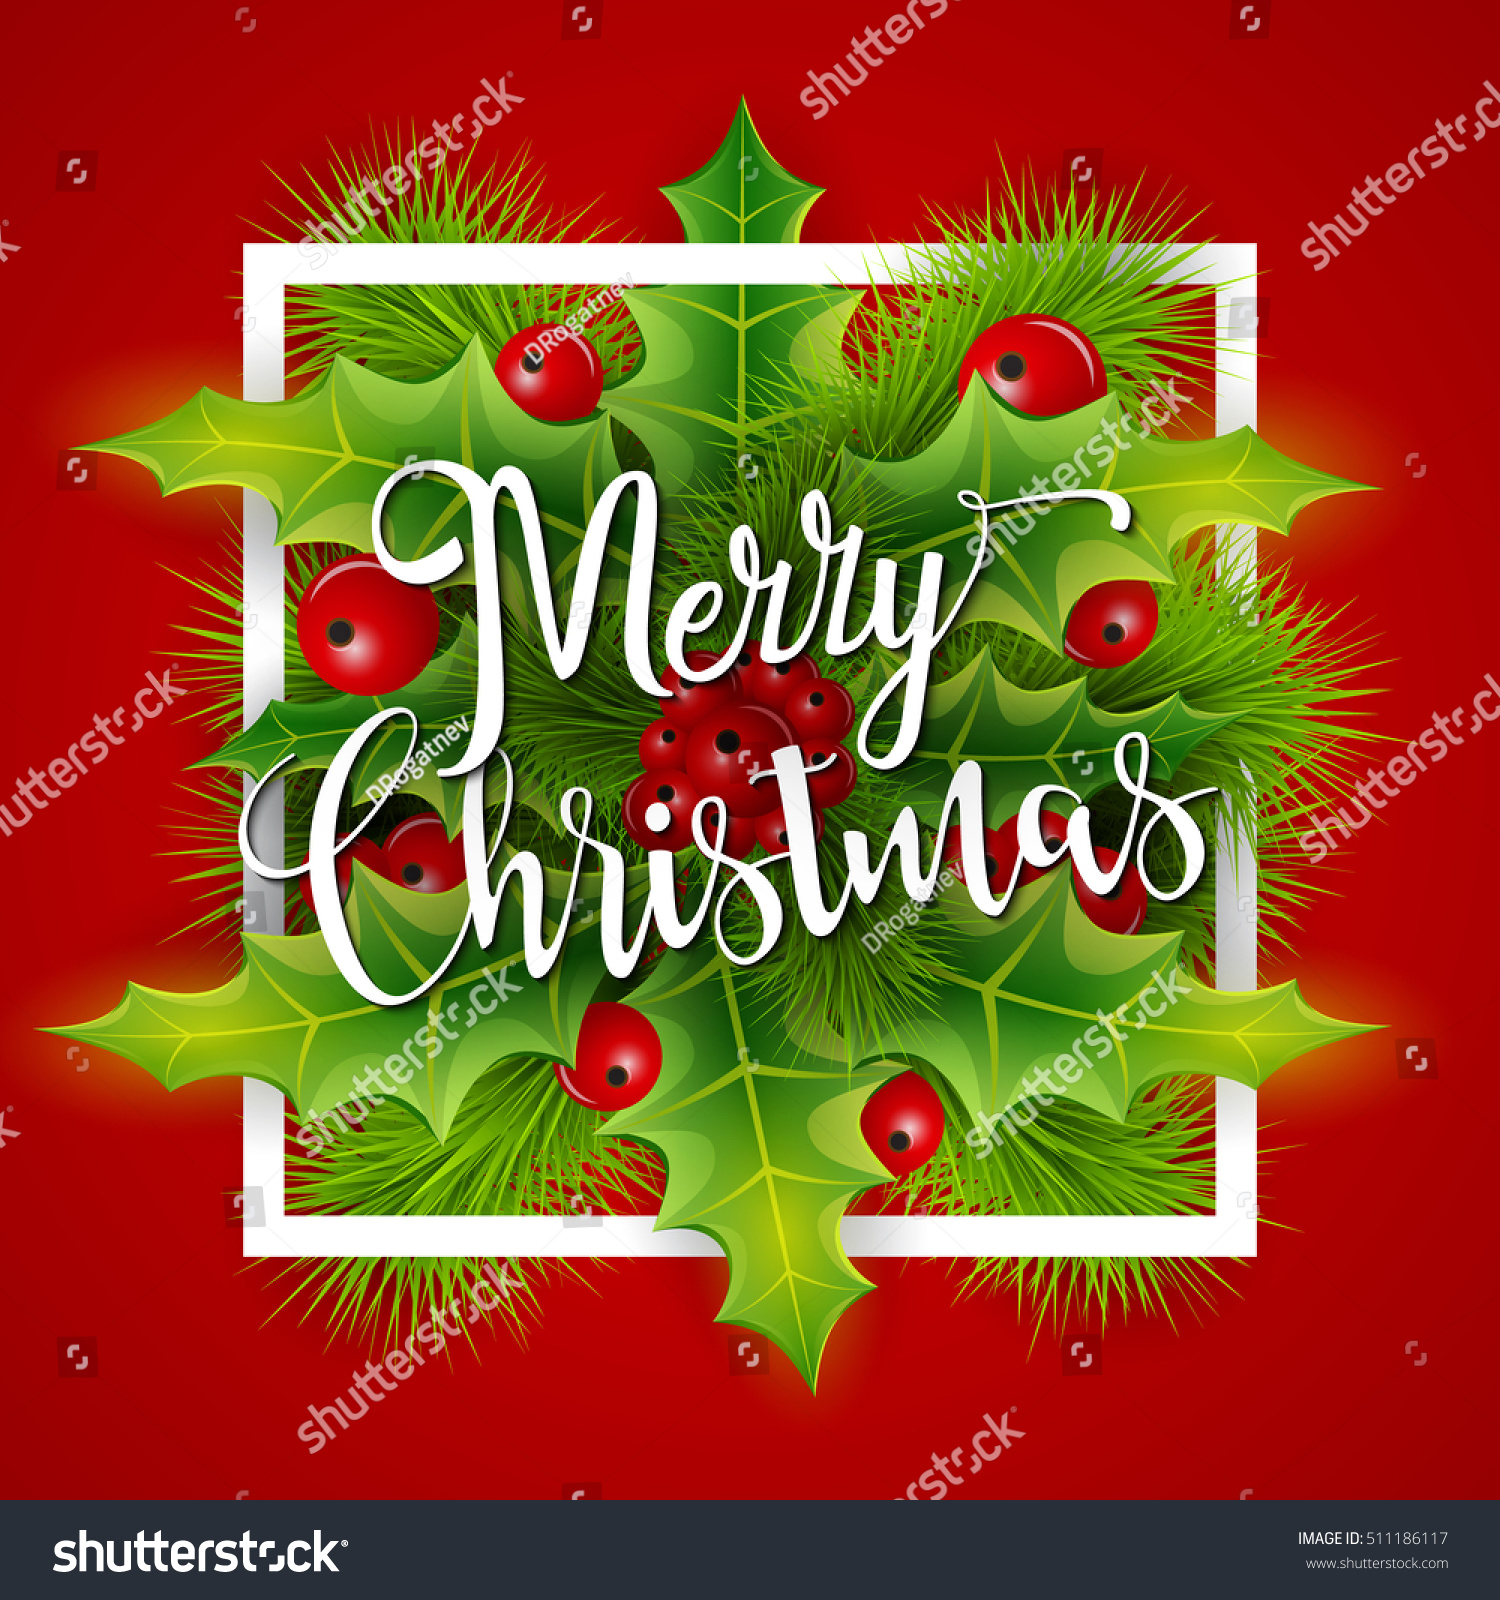 Merry Christmas Greetings Card Christmas Holly Stock Illustration ...